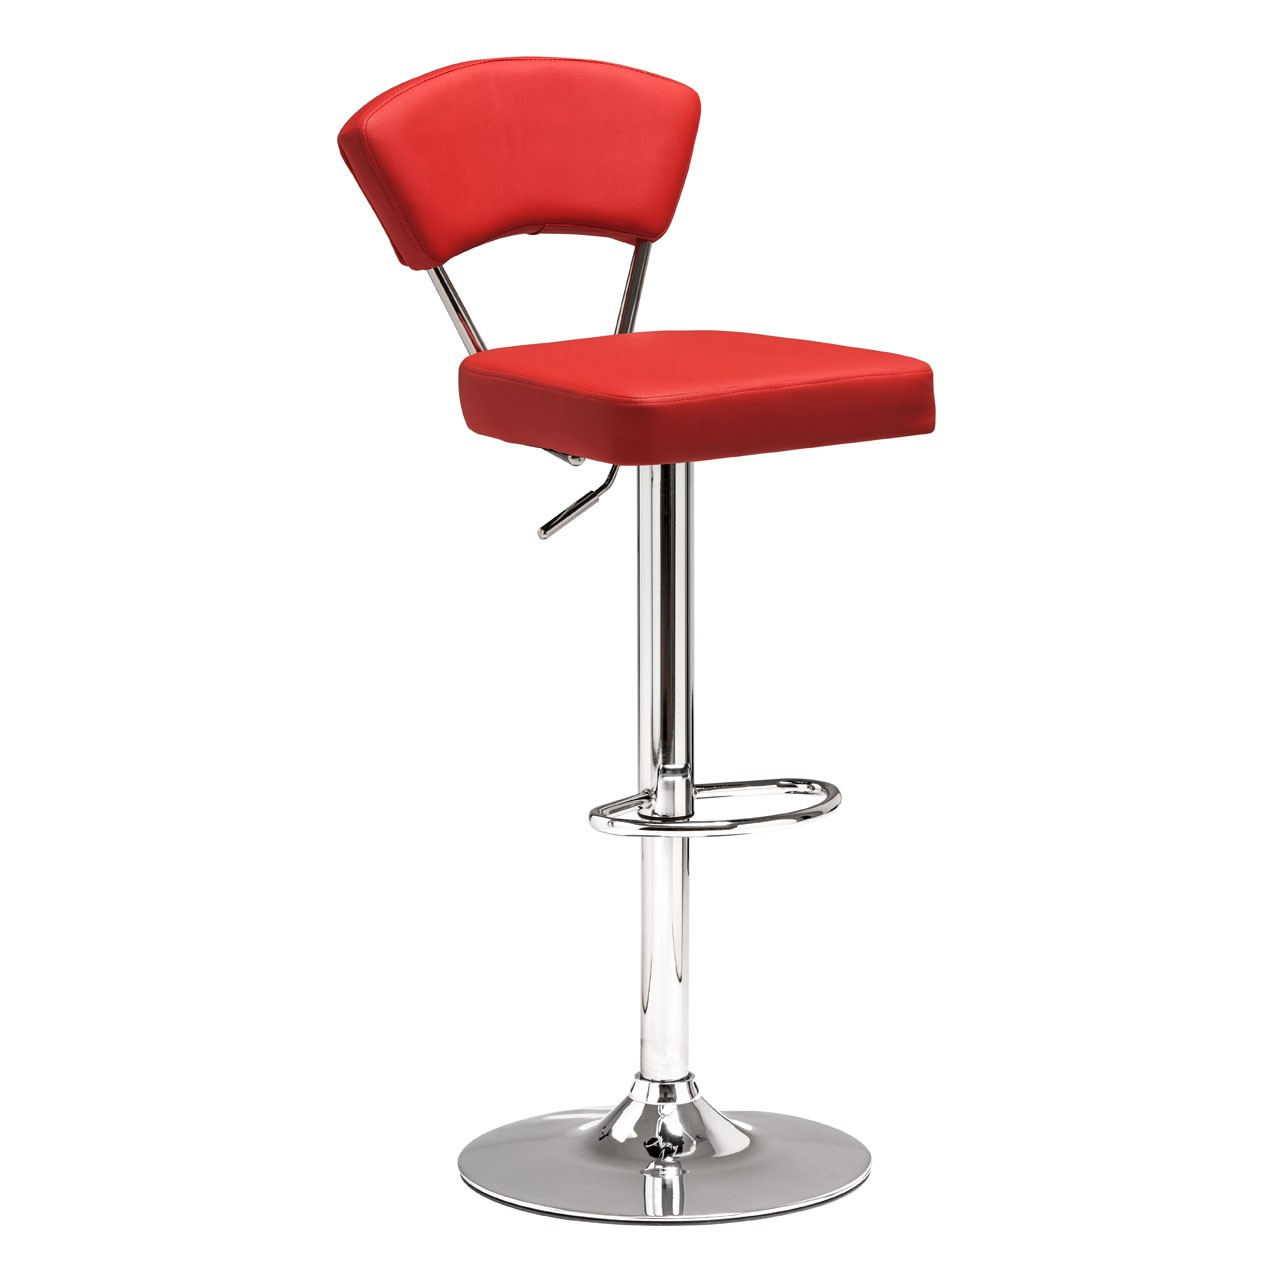 2 x Anya Bar Chair Leather Effect Chrome Finish Base Red